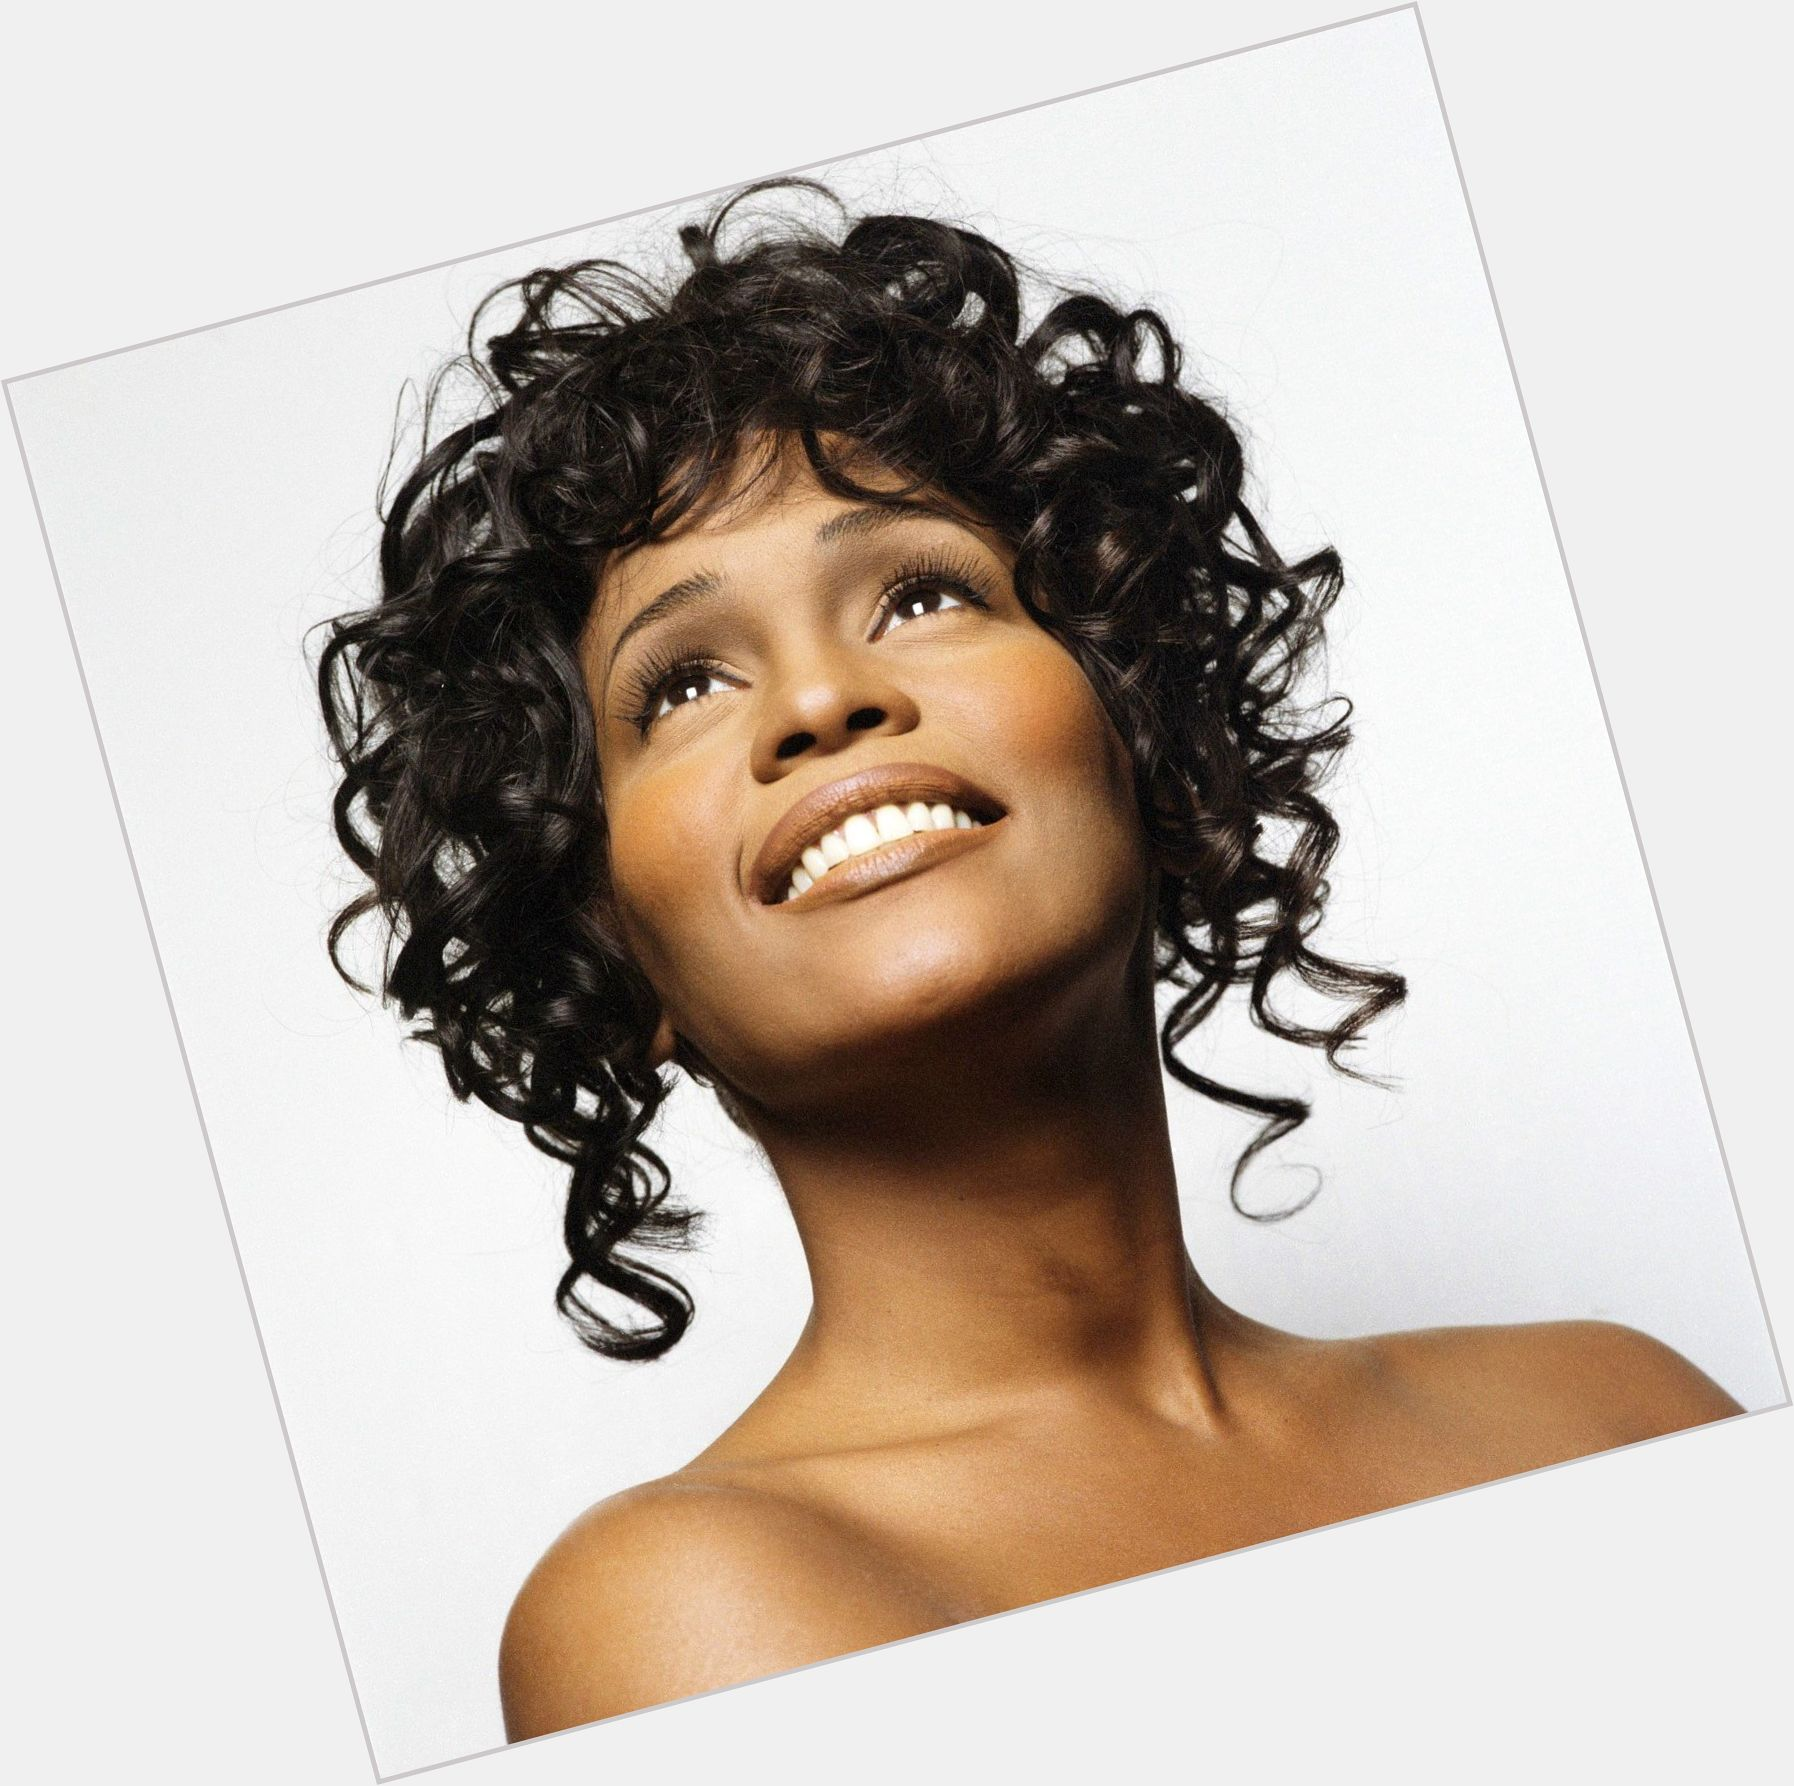 Whitney Houston new pic 1.jpg